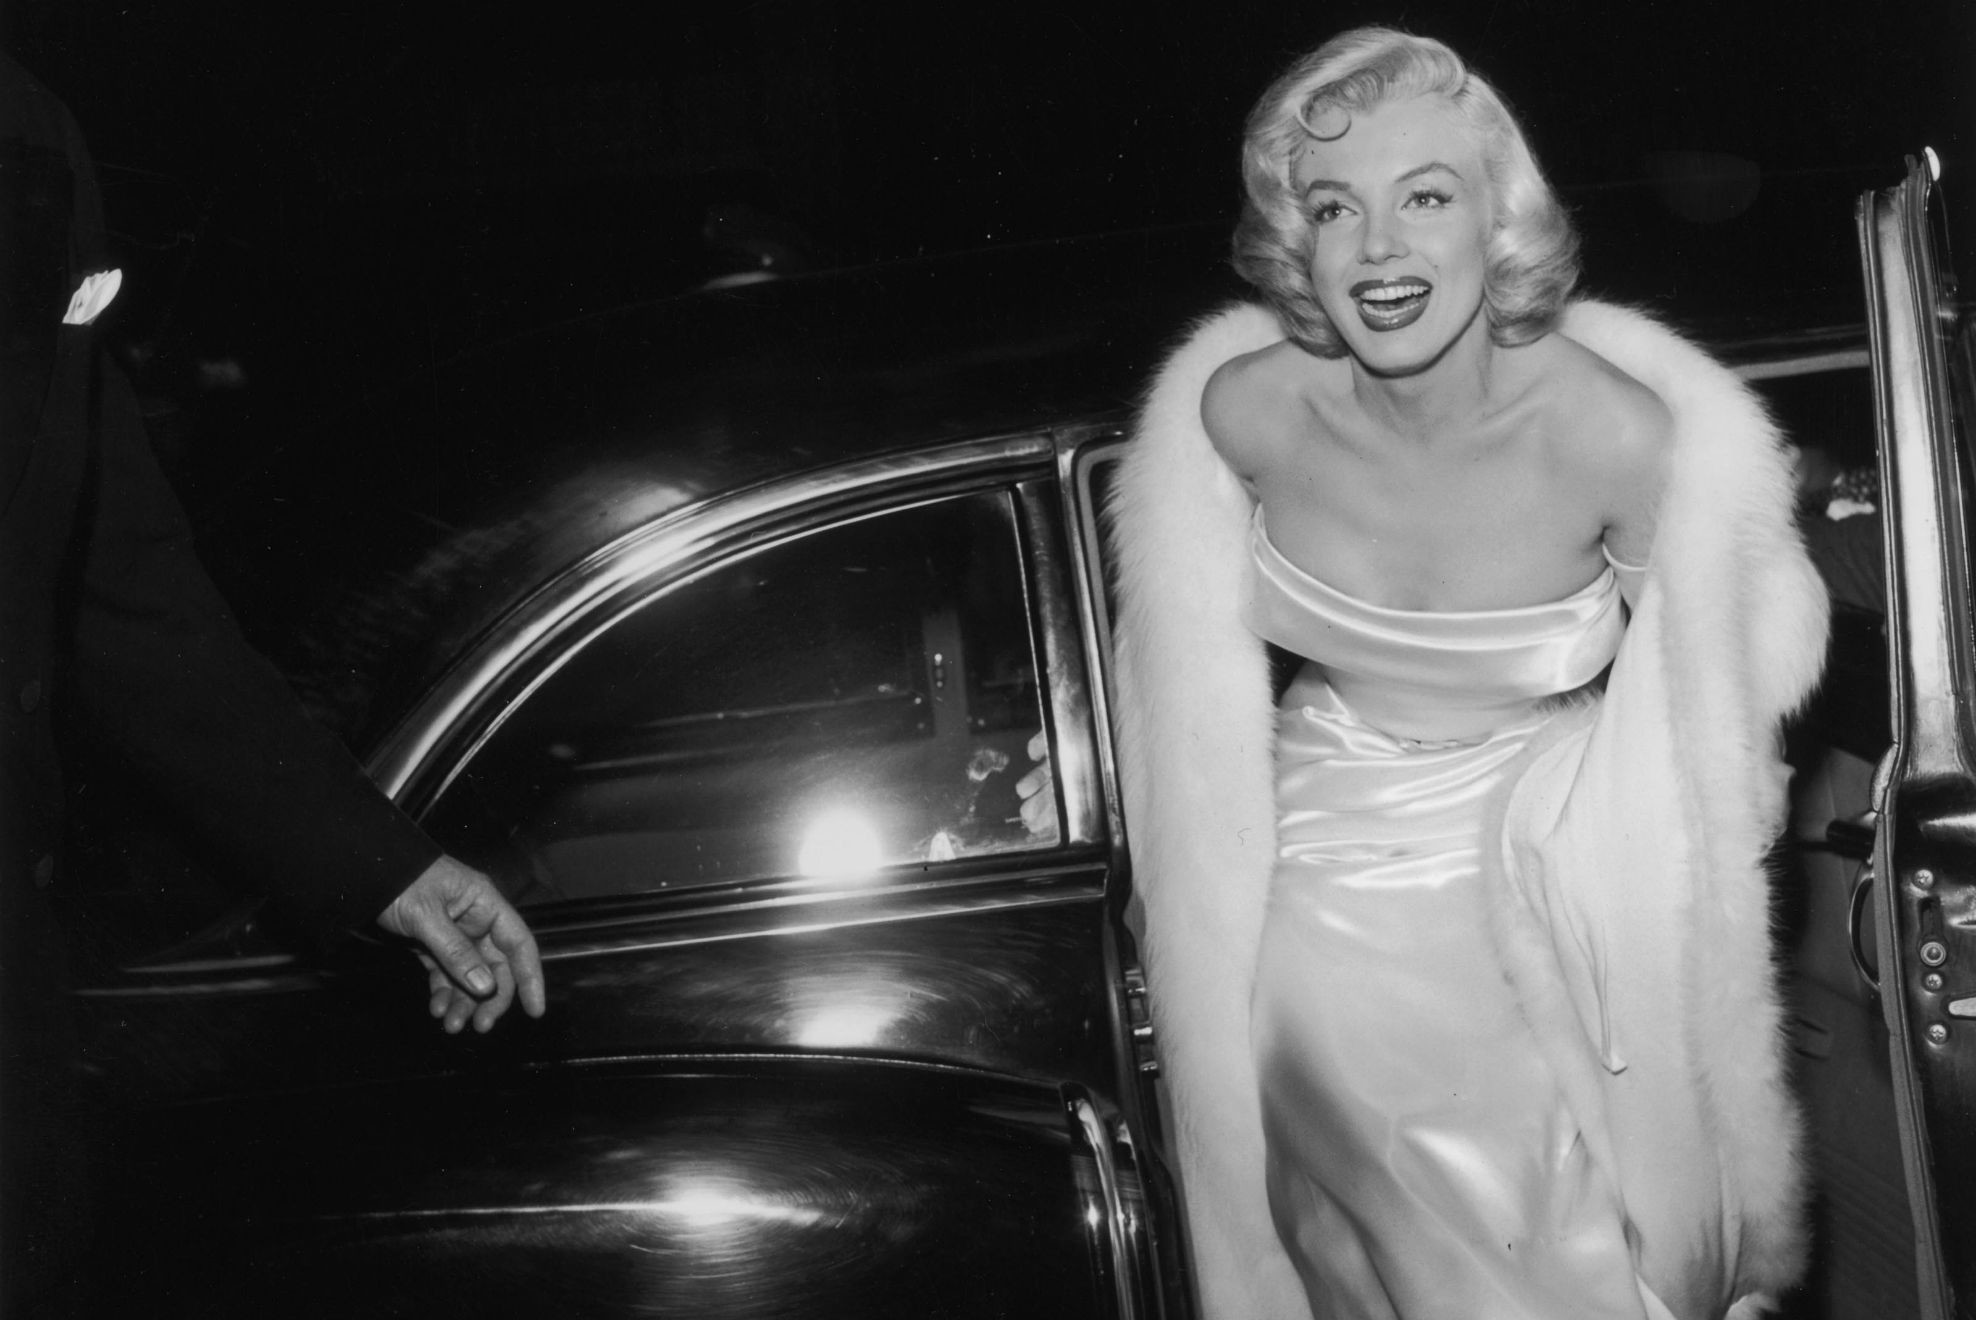 Andy Warhol Marilyn Monroe Wallpaper By Hd Wallpapers Daily .